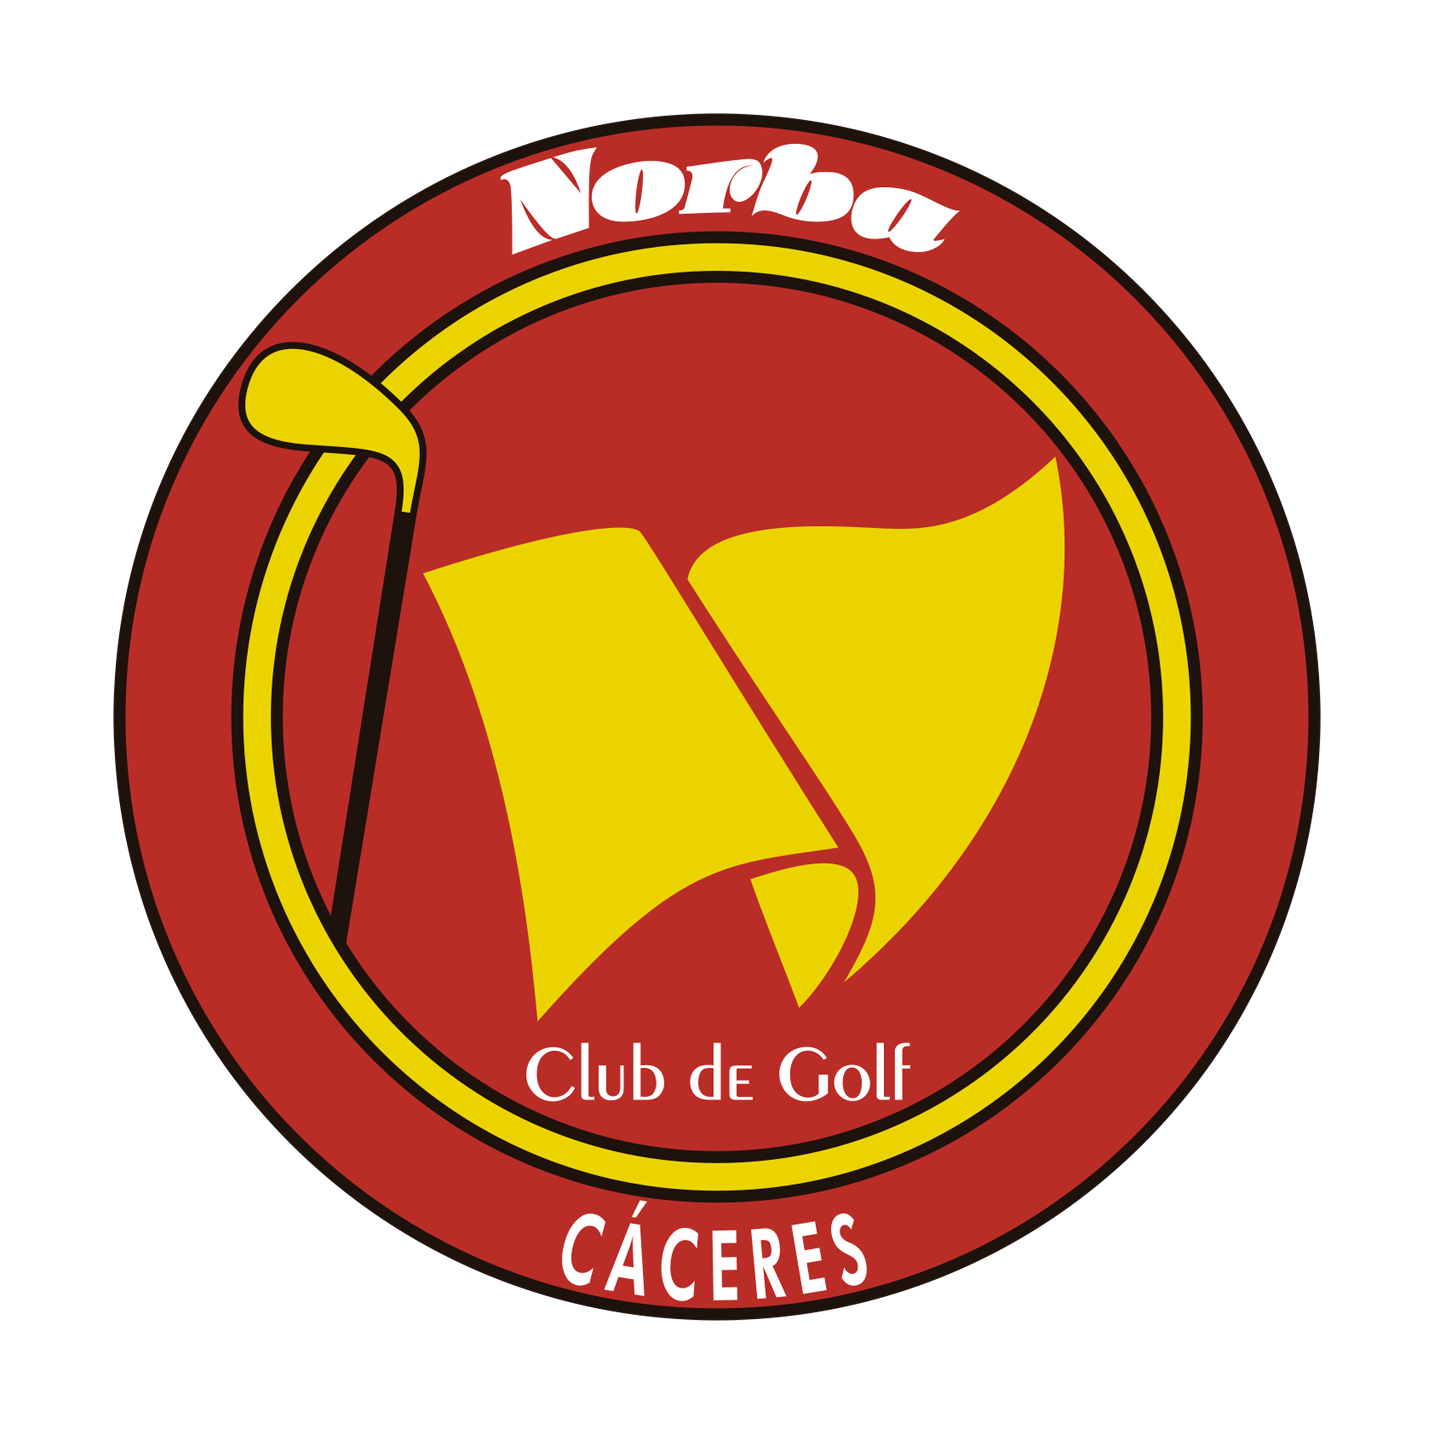 Norba Club de Golf